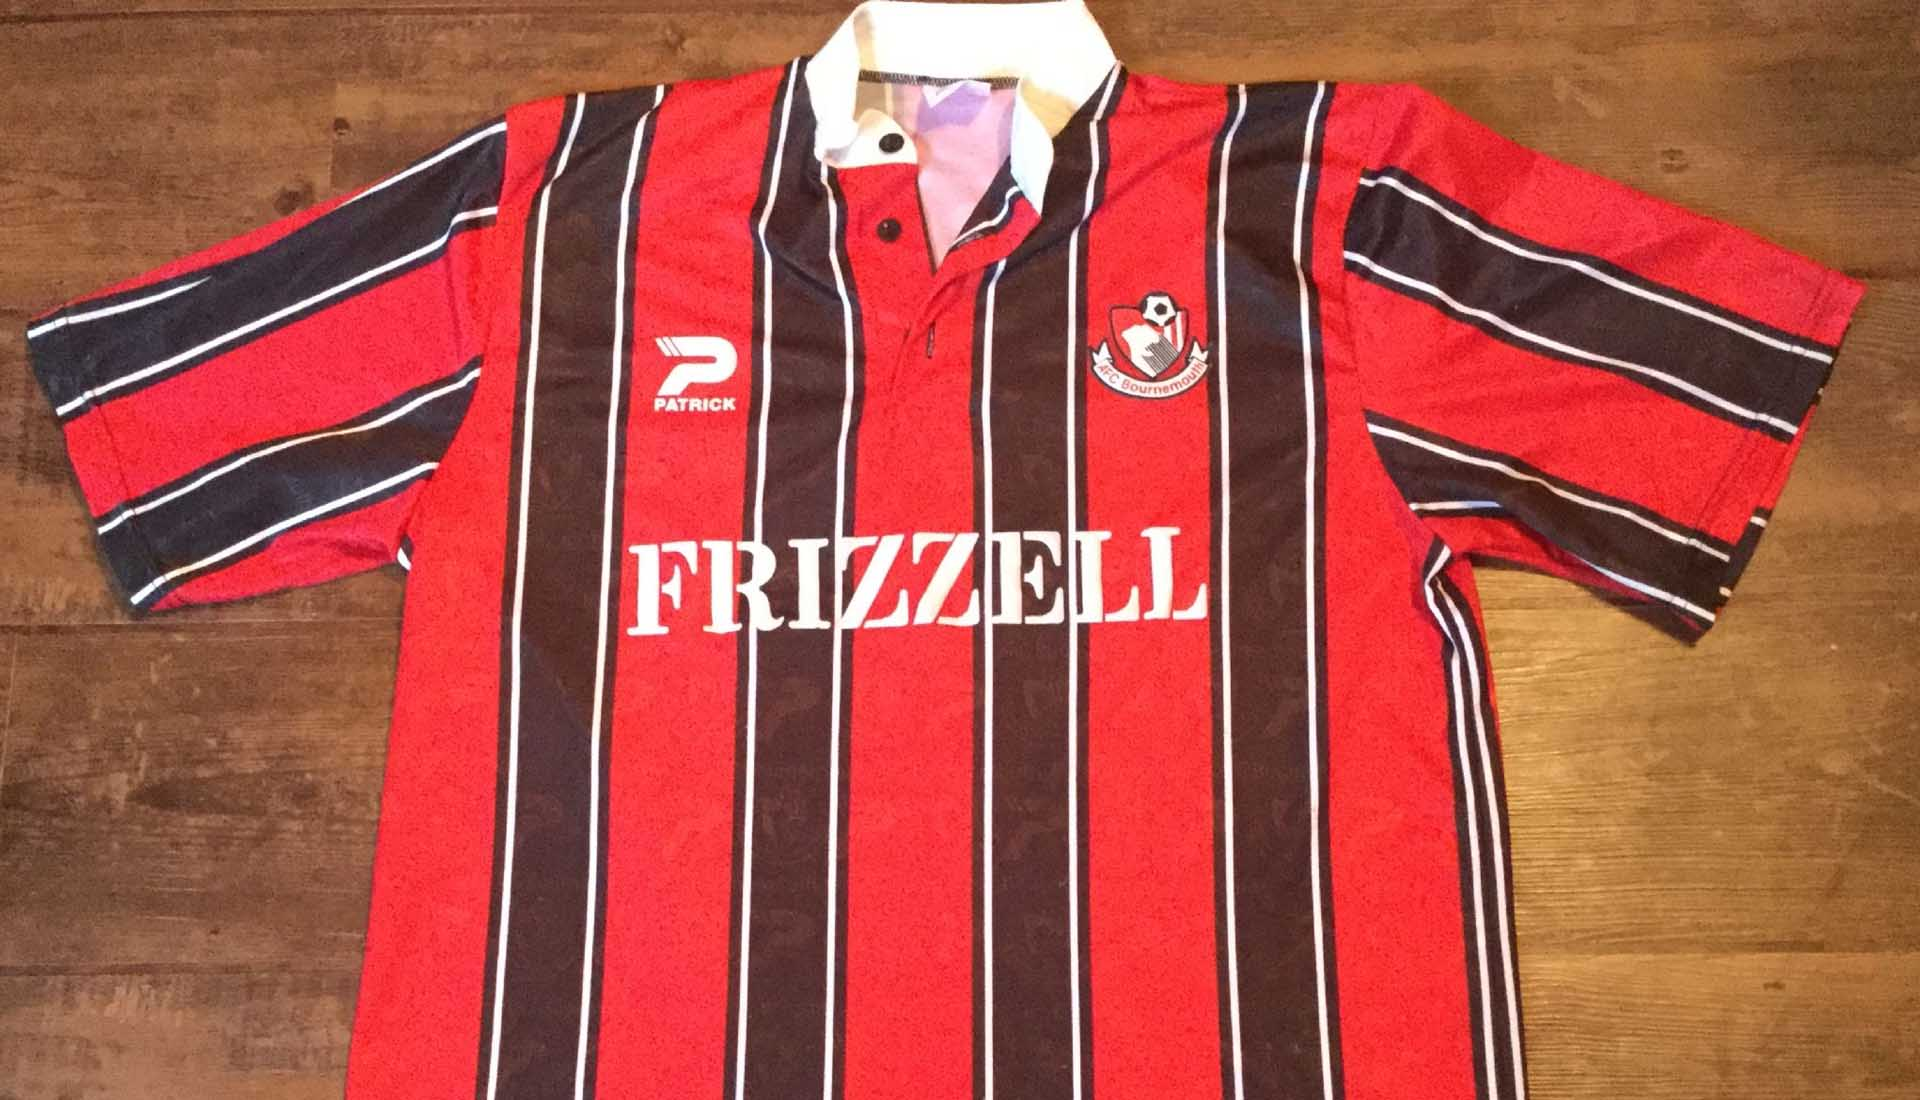 bournemouth-best-shirt-sponsors.jpg